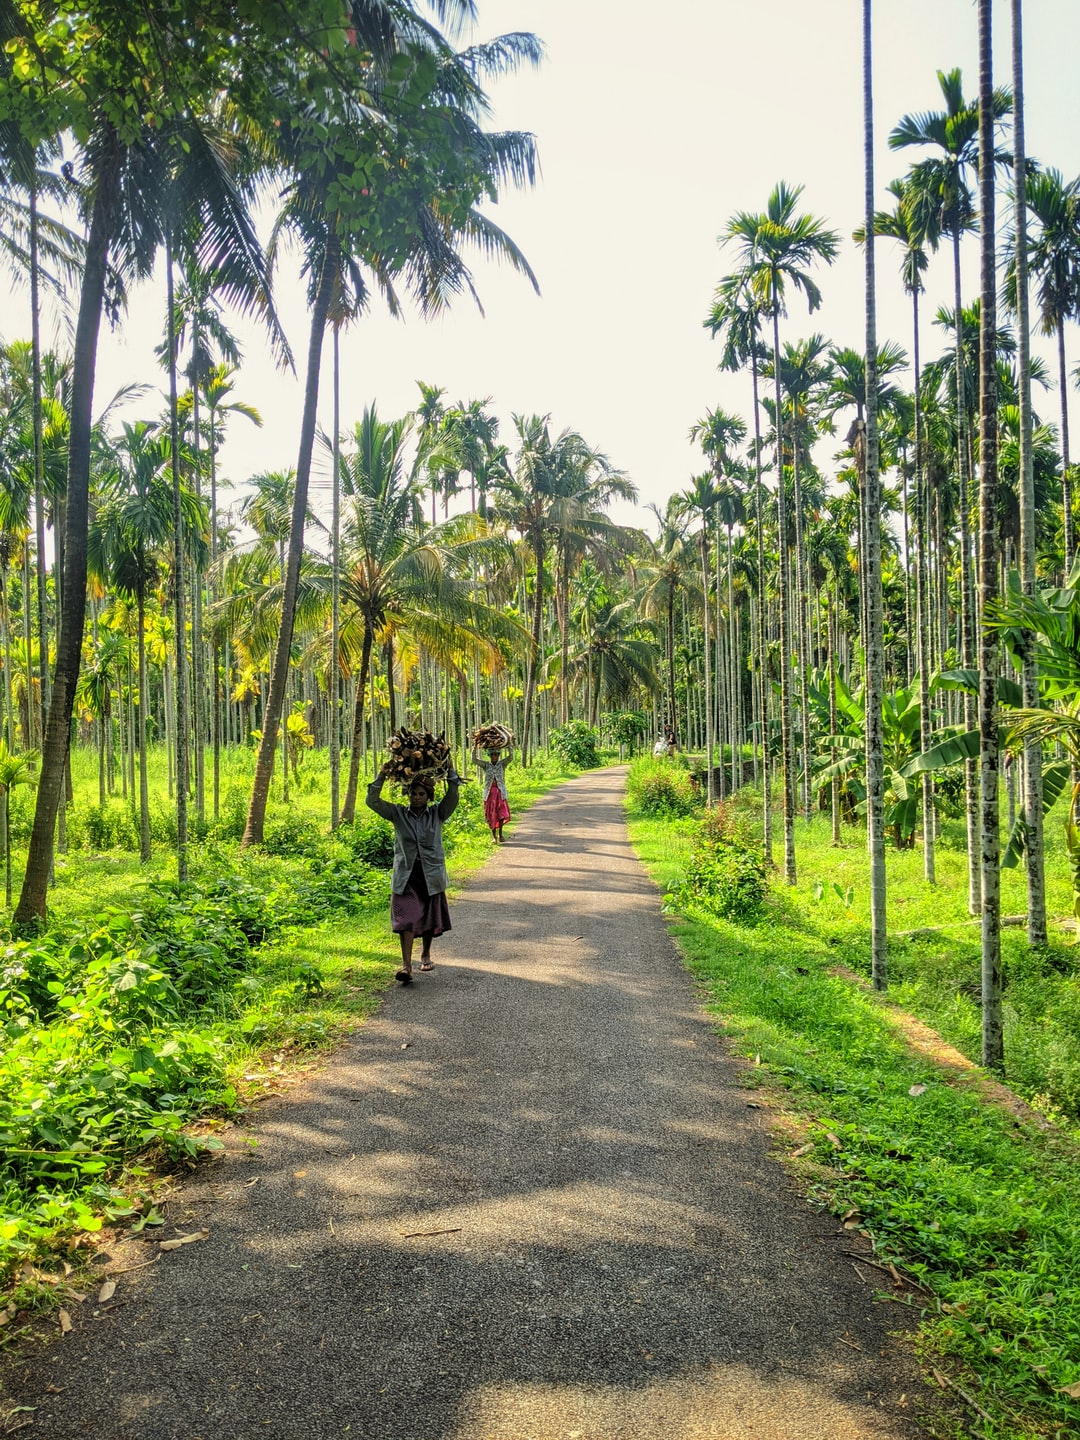 Took my bike for a ride across the village, through the pocket roads less travelled. Suddenly came across this place, something that reminded me of Goa. And then, as luck would have it, two ladies carrying firewood provided the perfect backdrop for my shot!